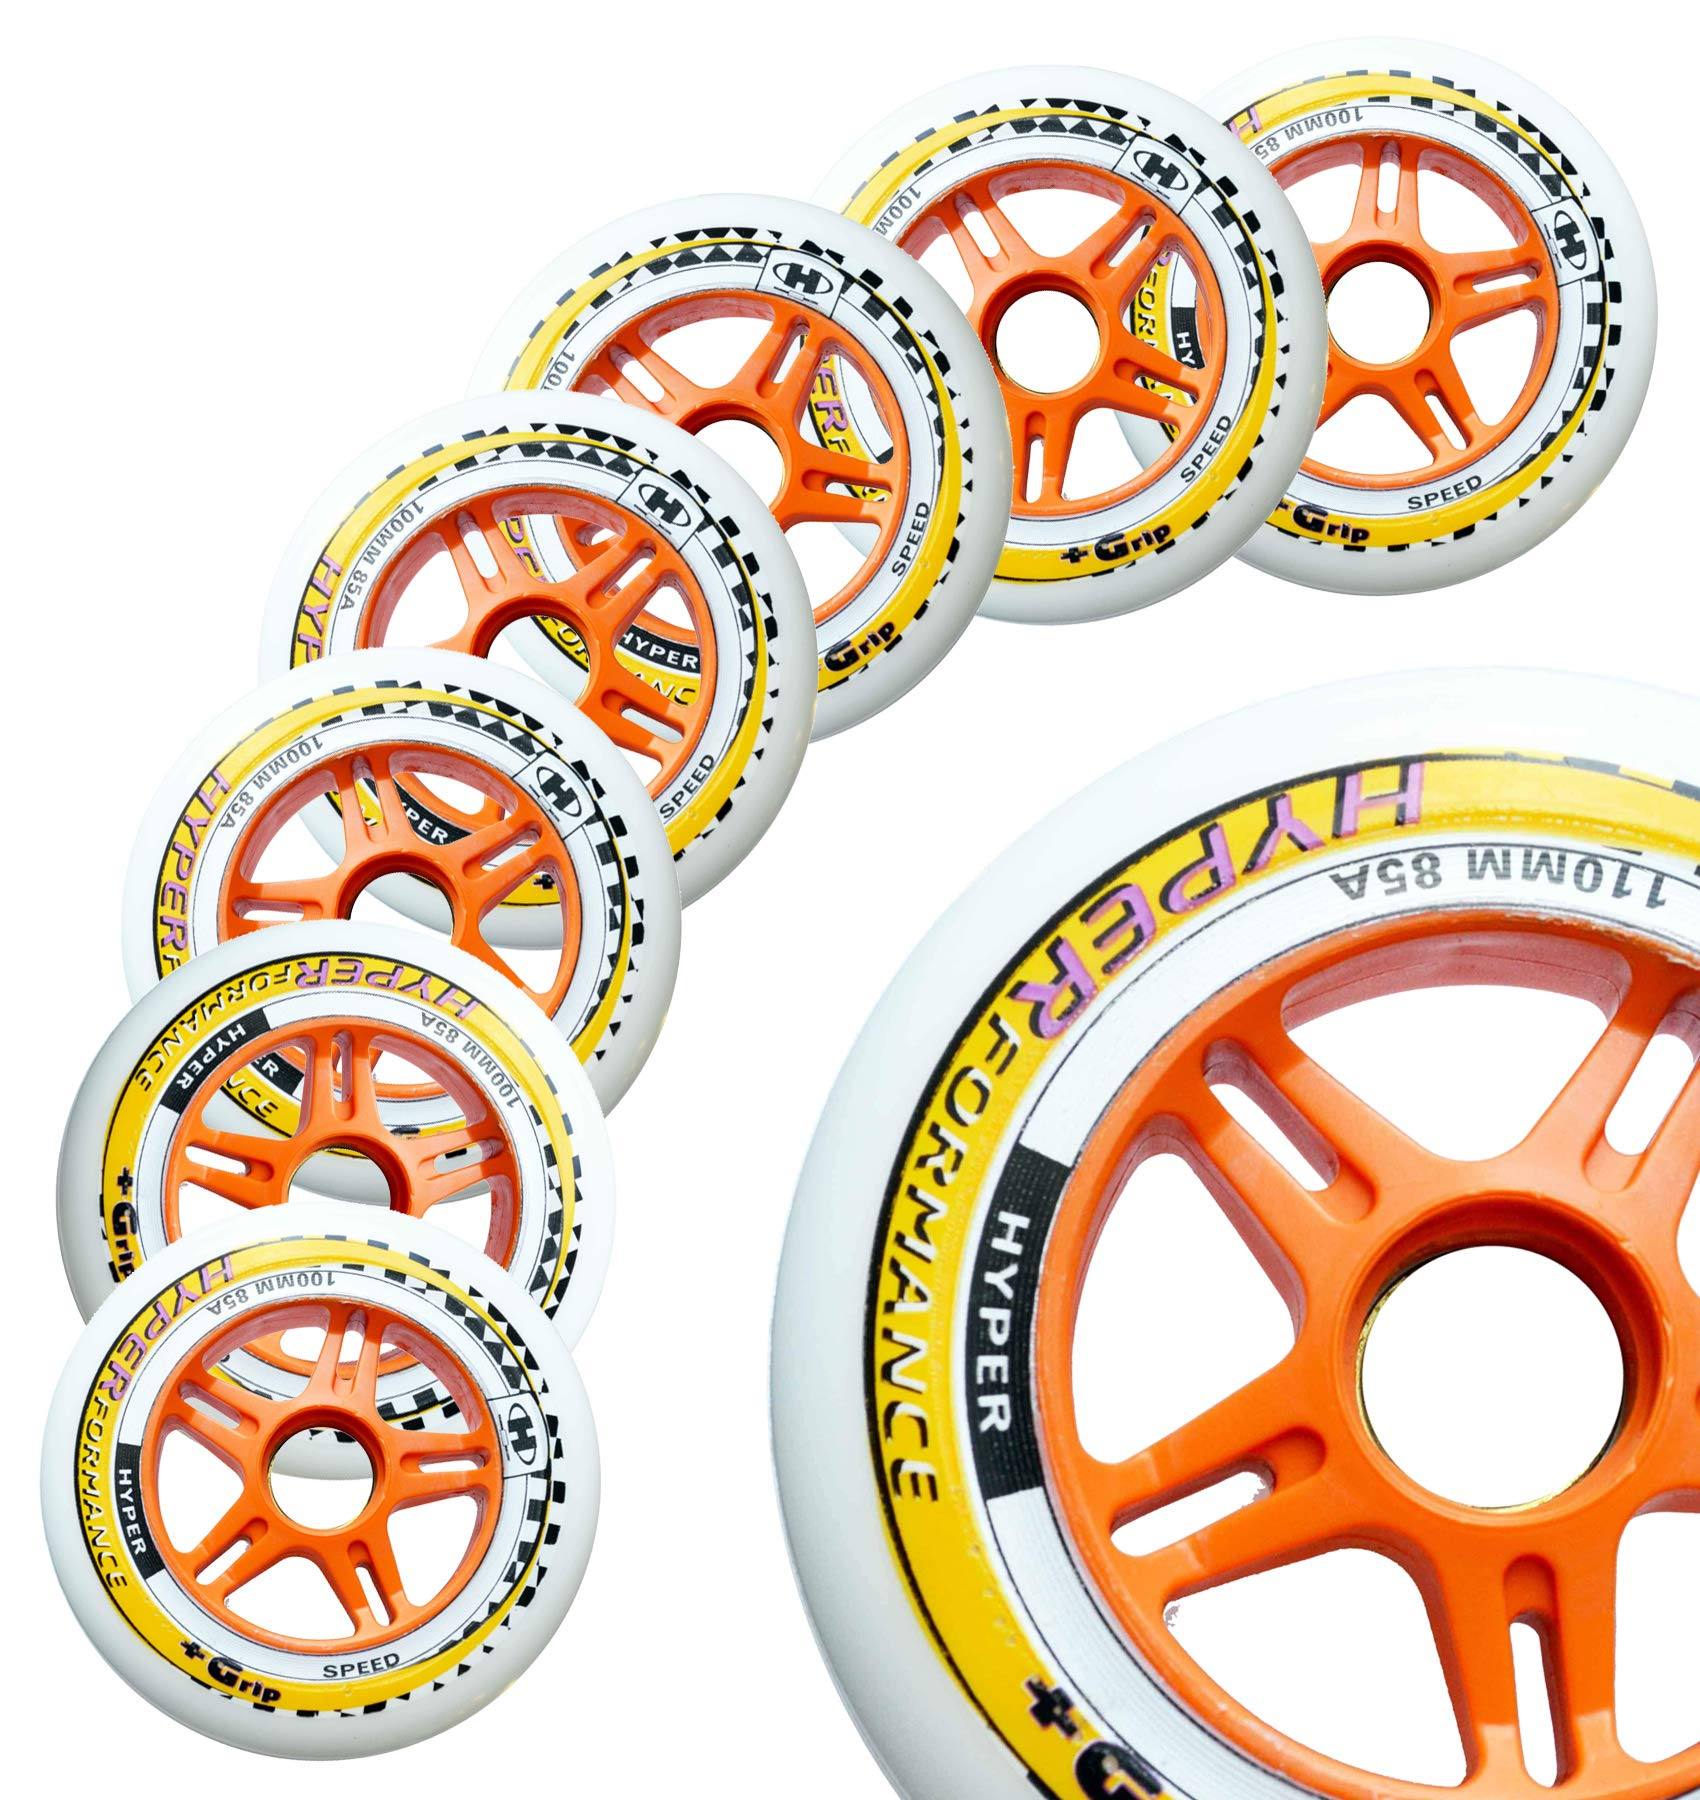 Inline Race Skate Wheels Hyper HYPERFORMANCE+G - 8 Wheels - 85A - Sizes: 84MM, 90MM, 100MM, 110MM - Speed Skating, Fitness and Outdoor Recreational Wheels (110MM)